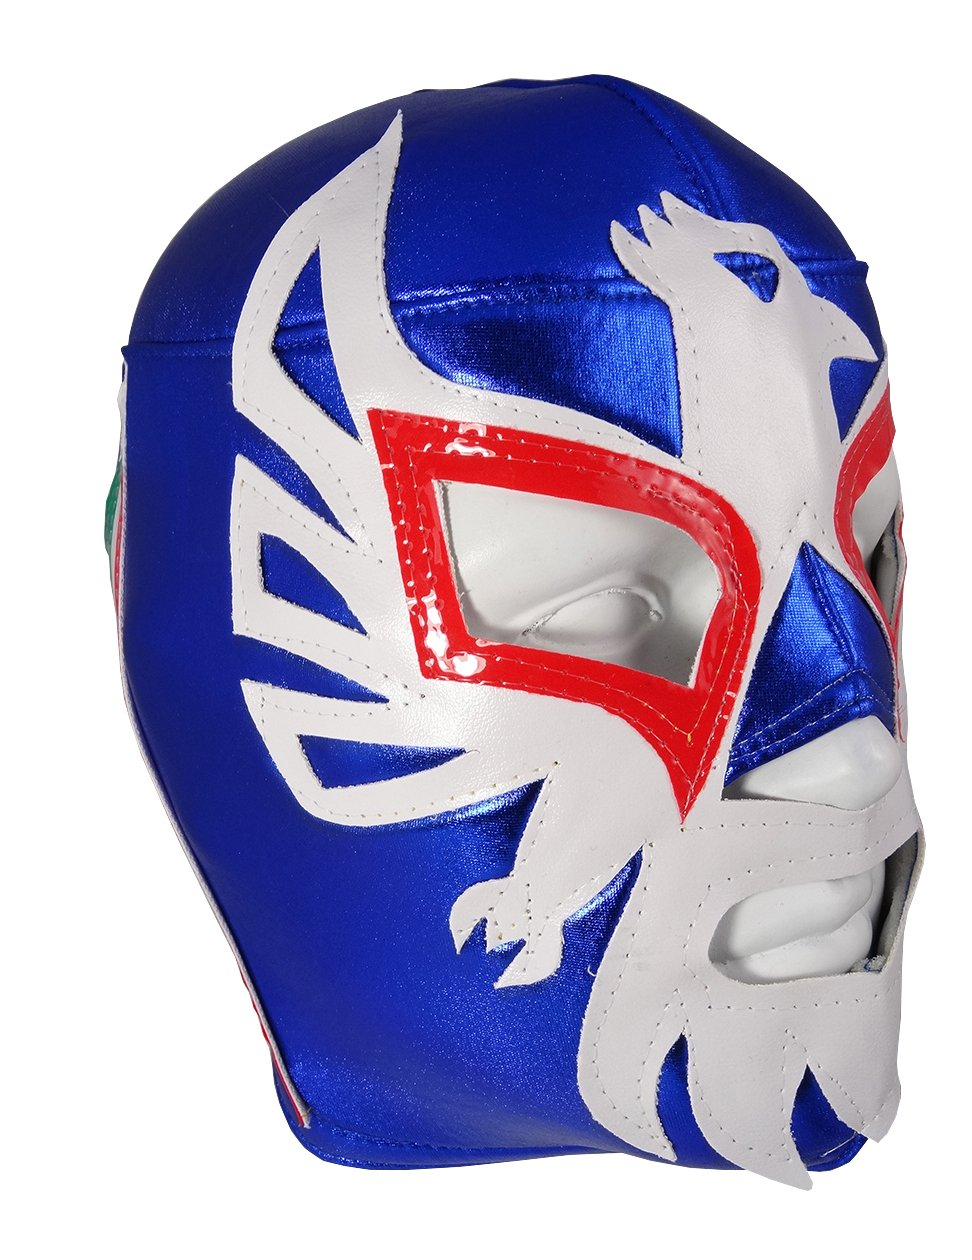 MEXICANO Adult Lucha Libre Wrestling Mask (pro-fit) Costume Wear - Blue/White by Mask Maniac